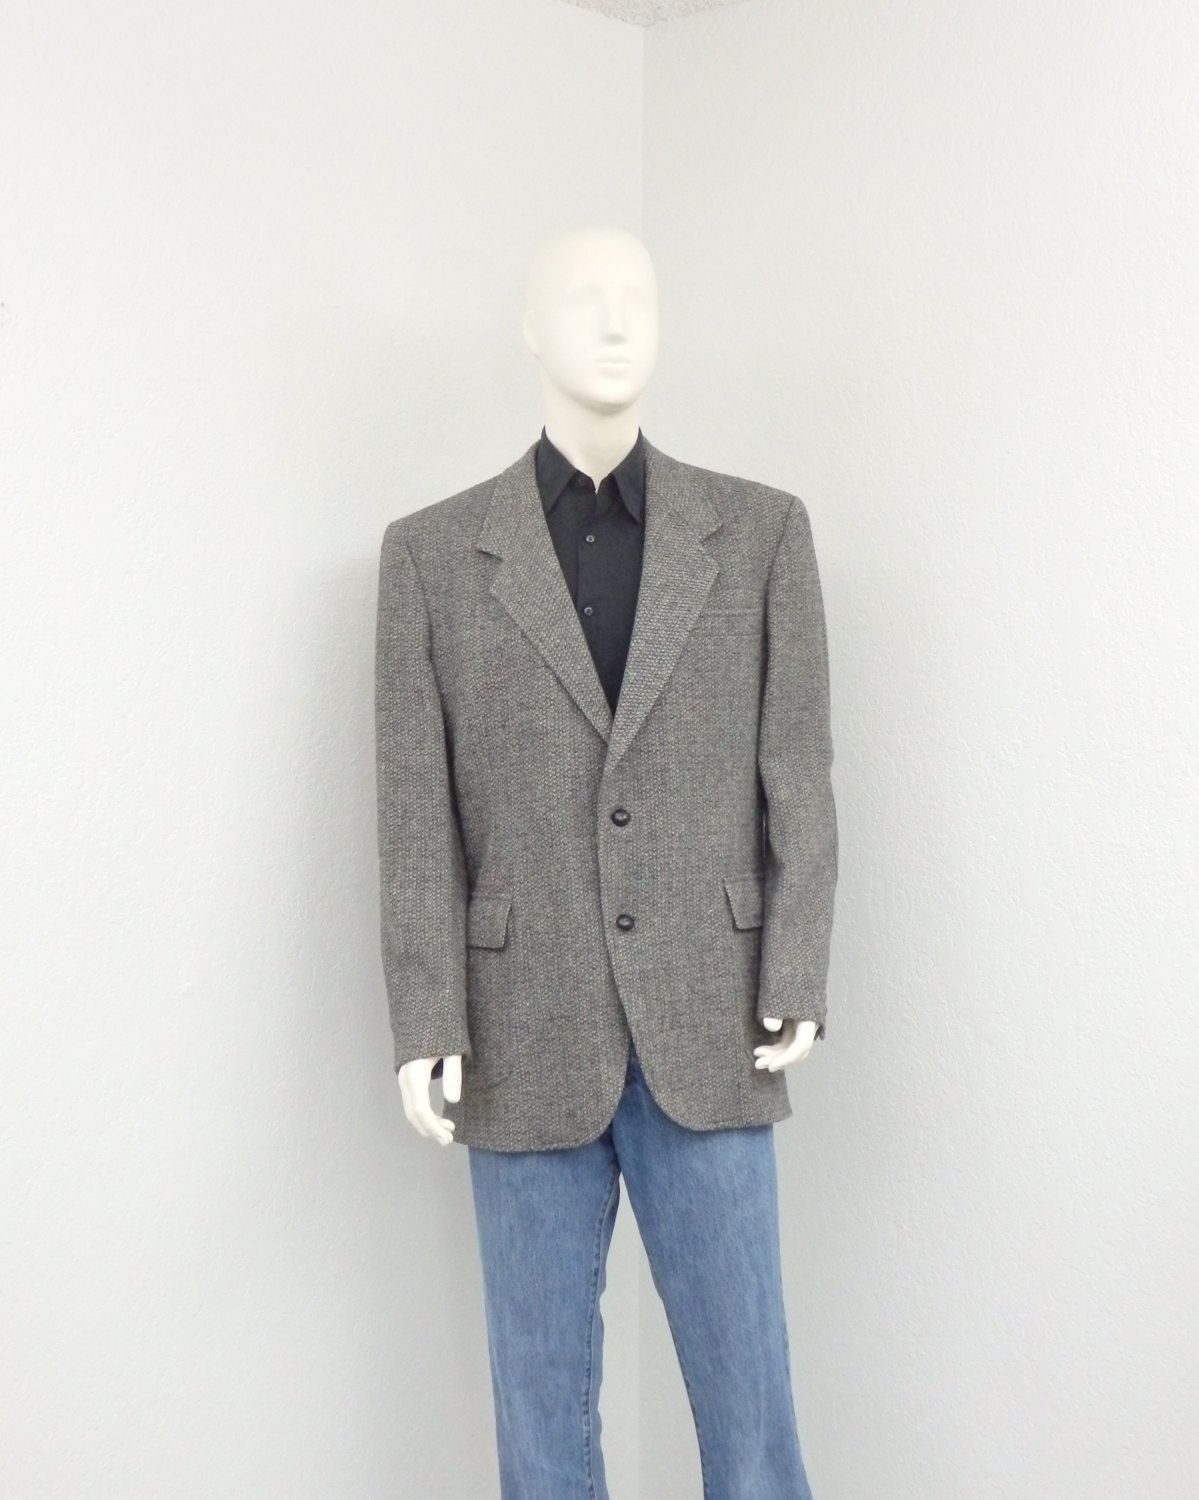 Vintage 80s Pendleton Wool Gray Tweed Blazer Jacket Elbow Patch Blazer  Sport Coat Mens Blazer Tweed Jacket vtg vintage blazer 1980s 80s blazer  pendleton ...